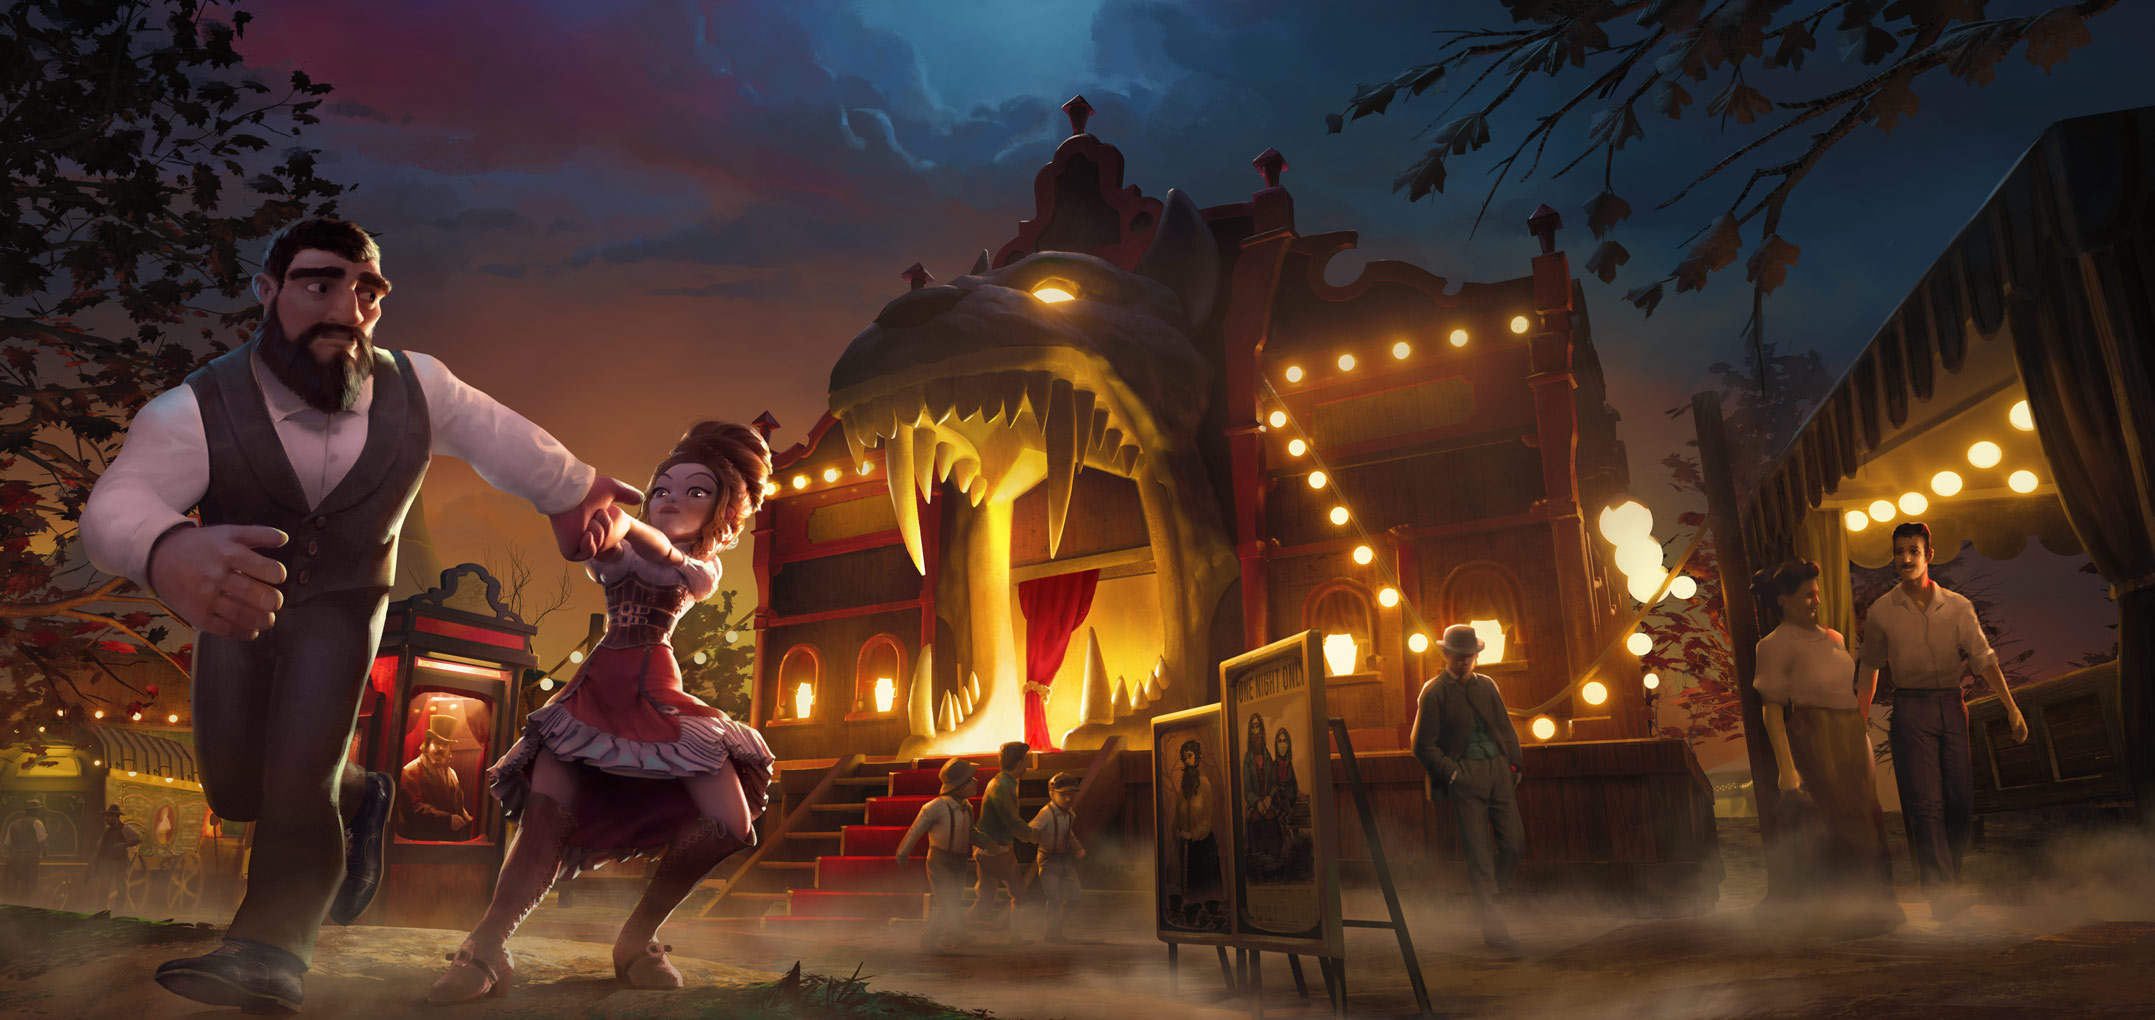 Foe Halloween 2020 2020 Halloween Event | Forge of Empires Wiki | Fandom